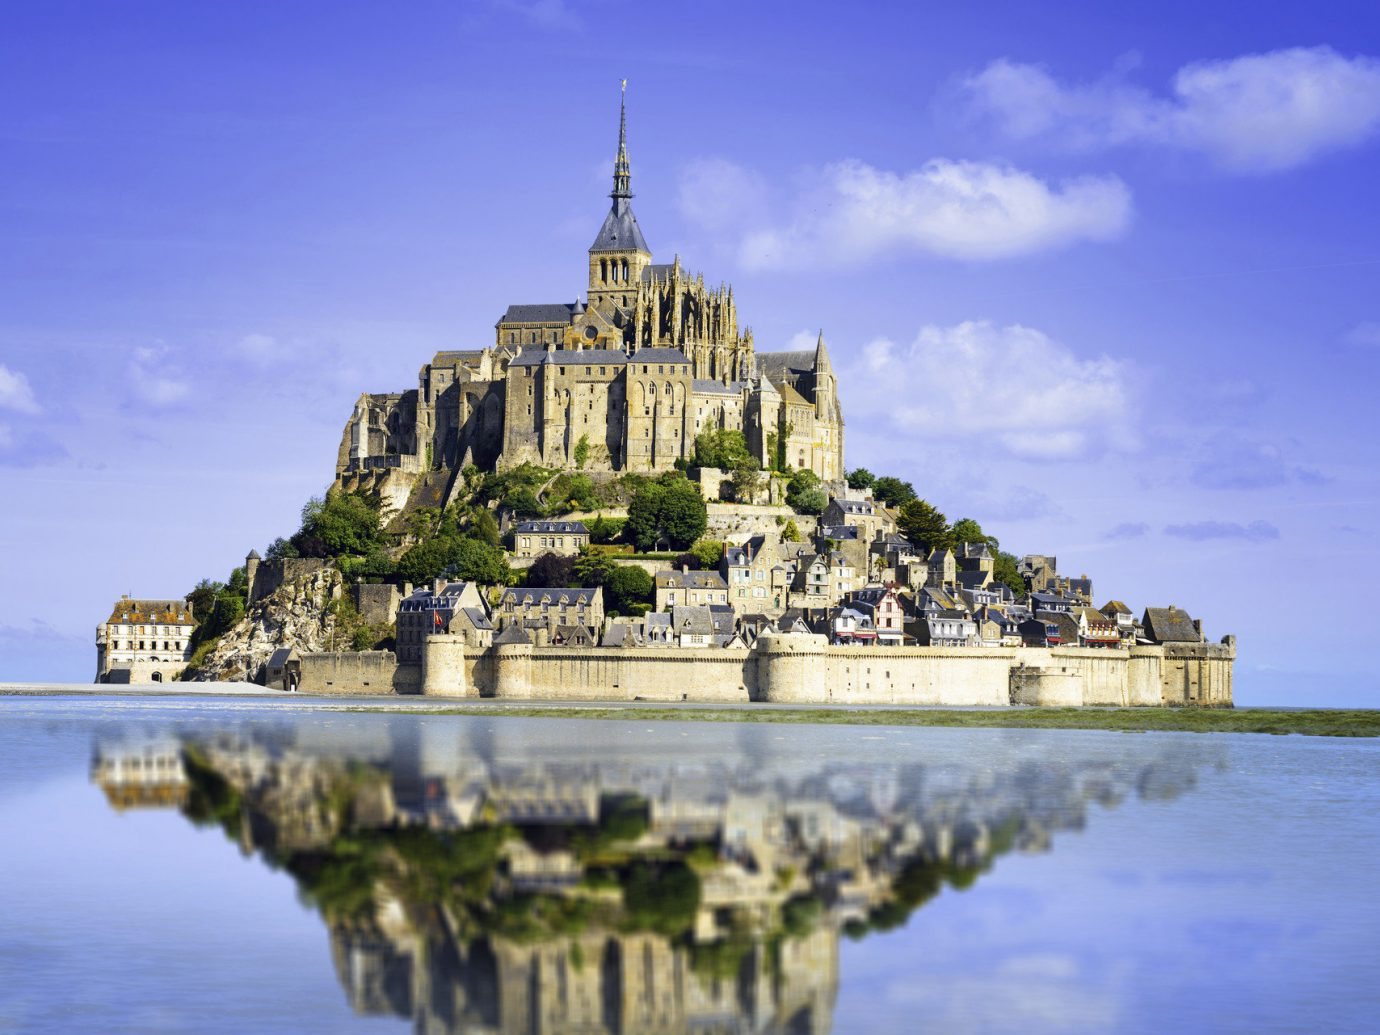 Trip Ideas sky outdoor water reflection building landmark place of worship tourism temple castle Sea cityscape château monastery stone day